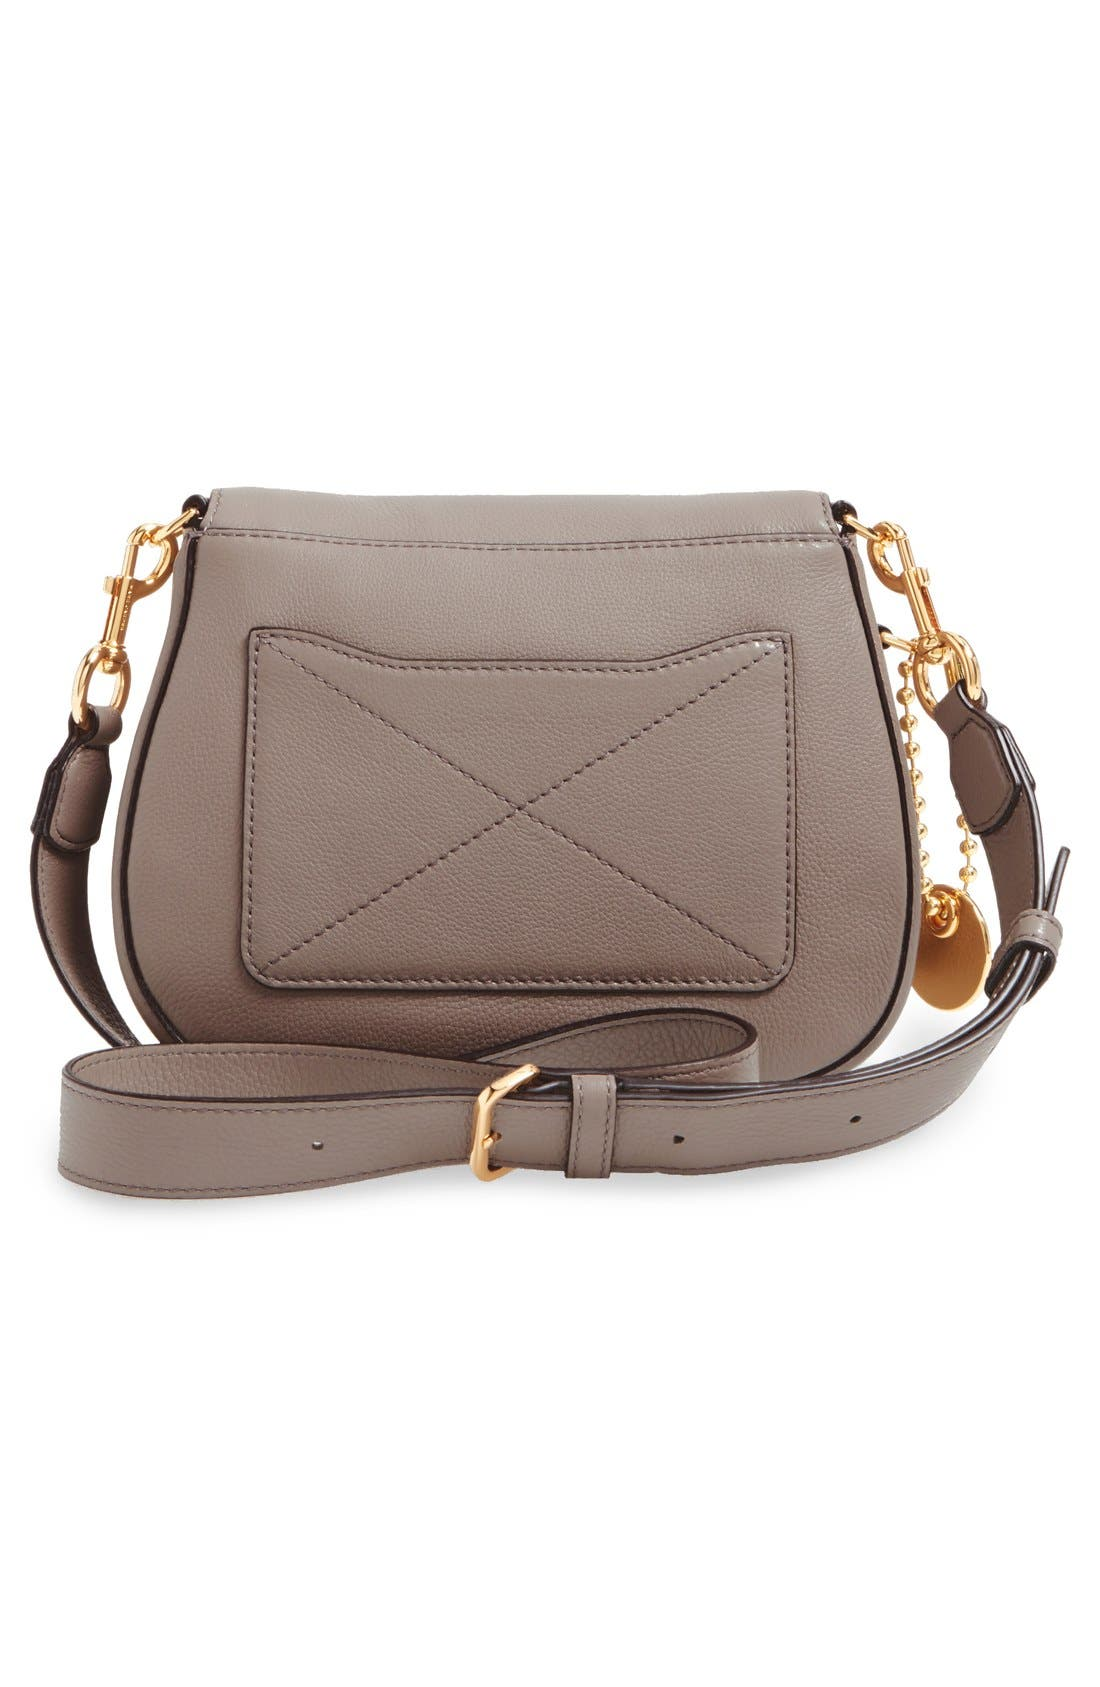 Small Recruit Nomad Pebbled Leather Crossbody Bag,                             Alternate thumbnail 73, color,